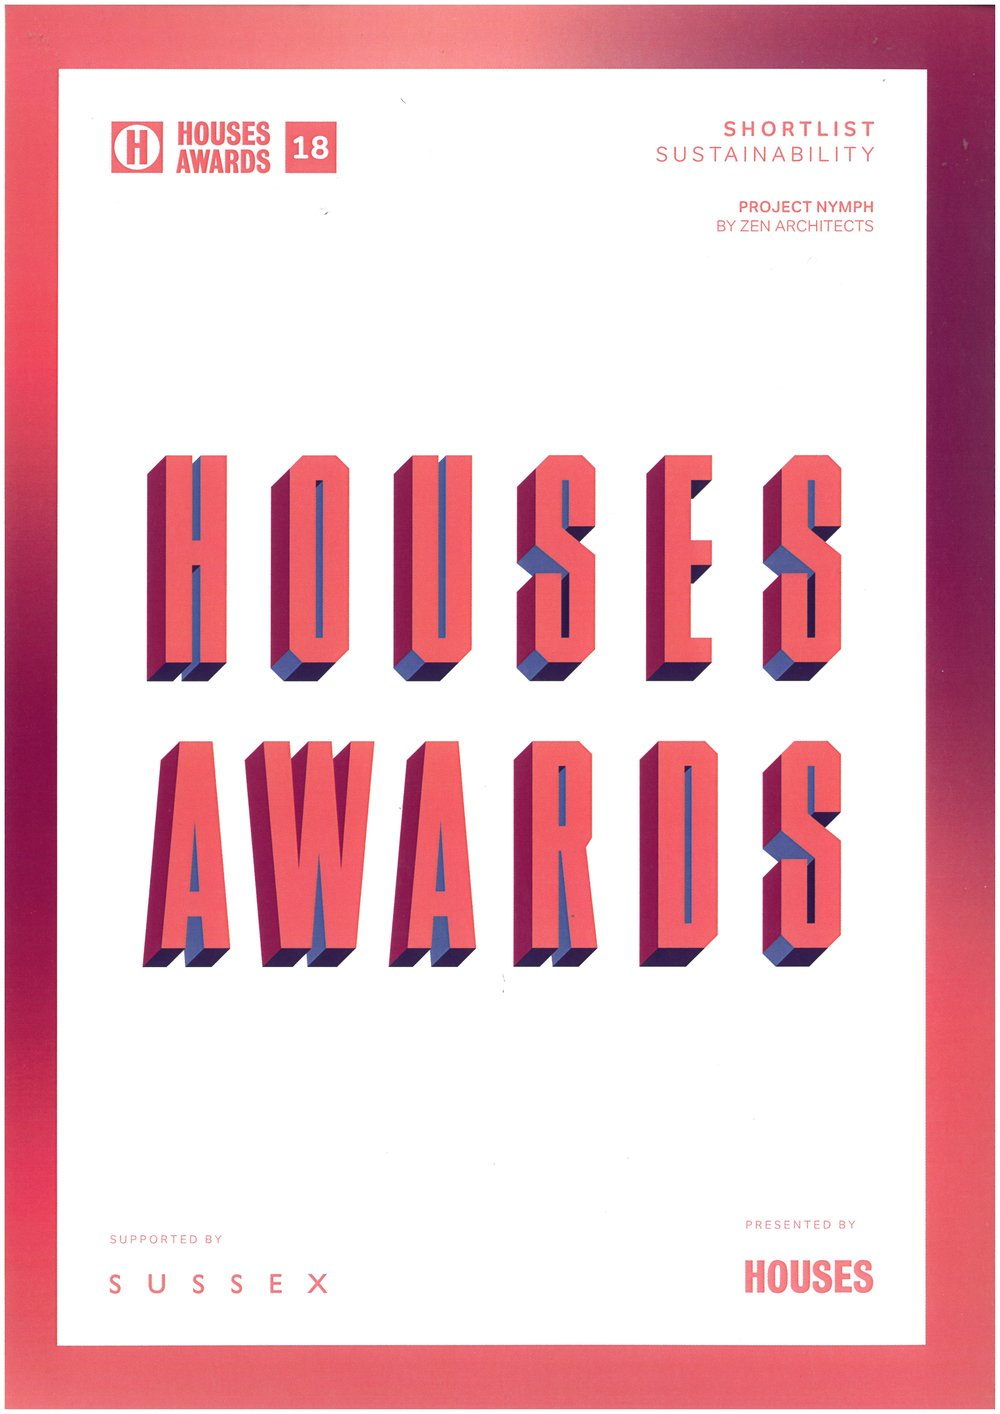 2018_Houses Awards_Shortlist_Sustainability_Project Nymph.jpg